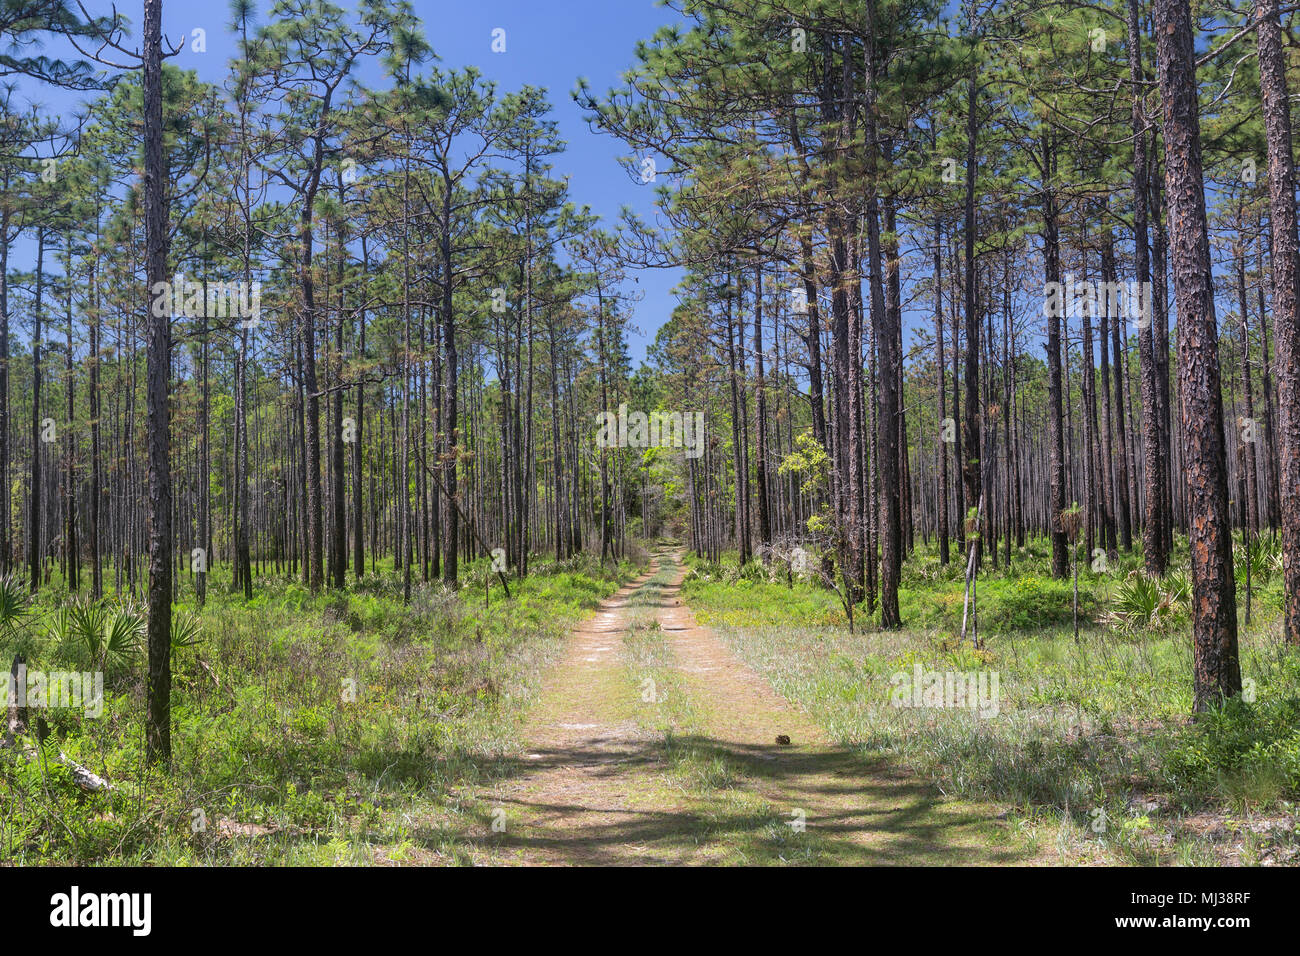 A forest road runs through a pine flatwoods habitat in Apalachicola National Forest, Florida. - Stock Image